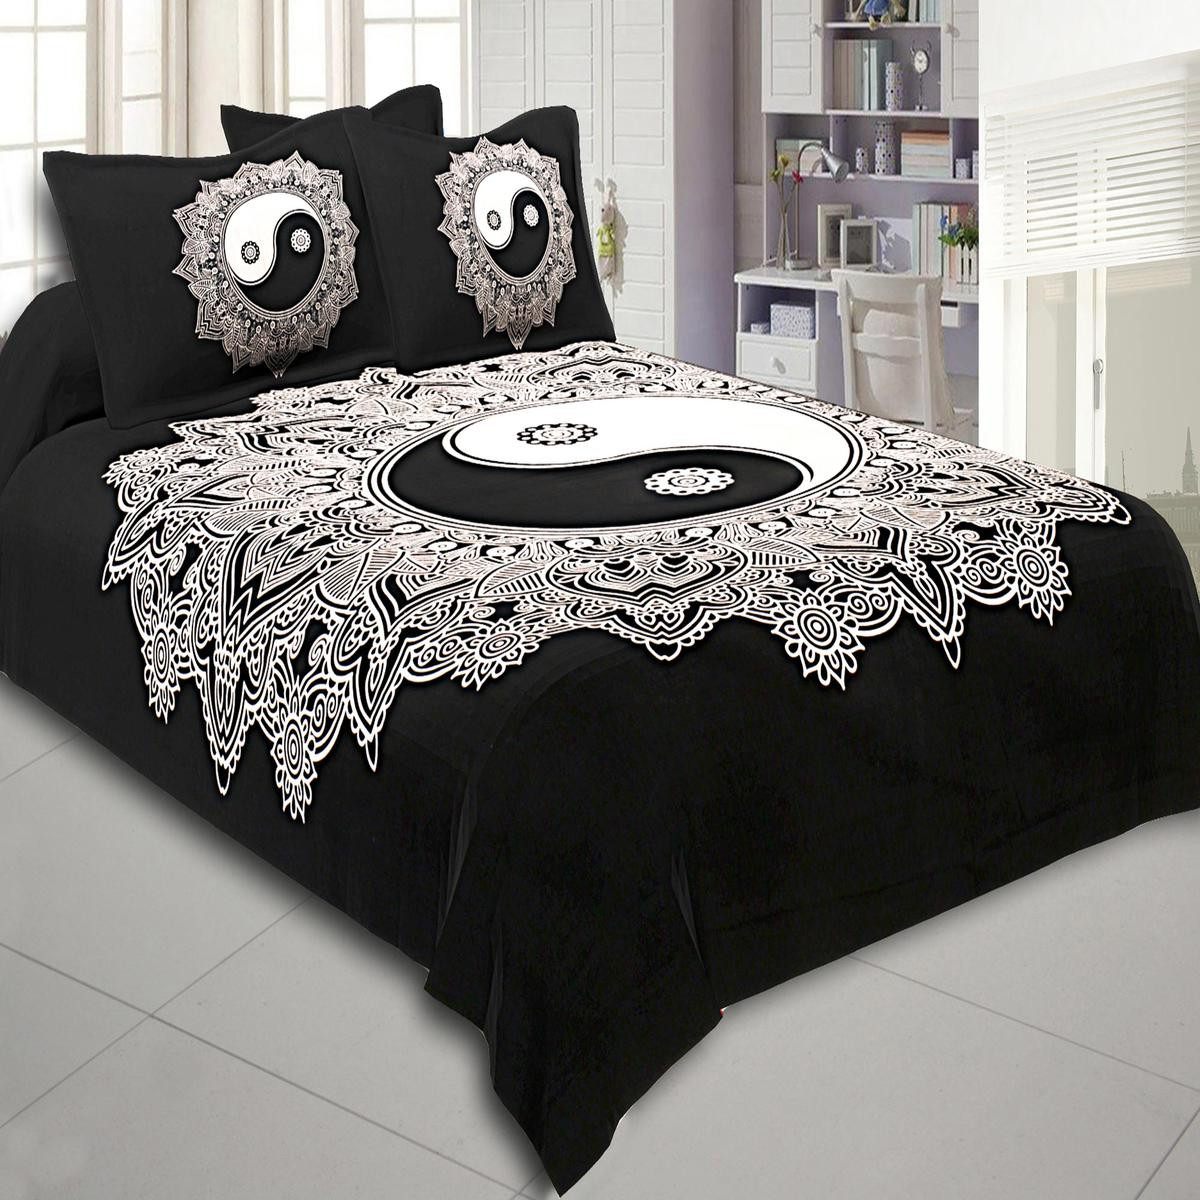 Delightful Black-White Colored Doordarshan Print Cotton Double Bedsheet With Pillow Cover